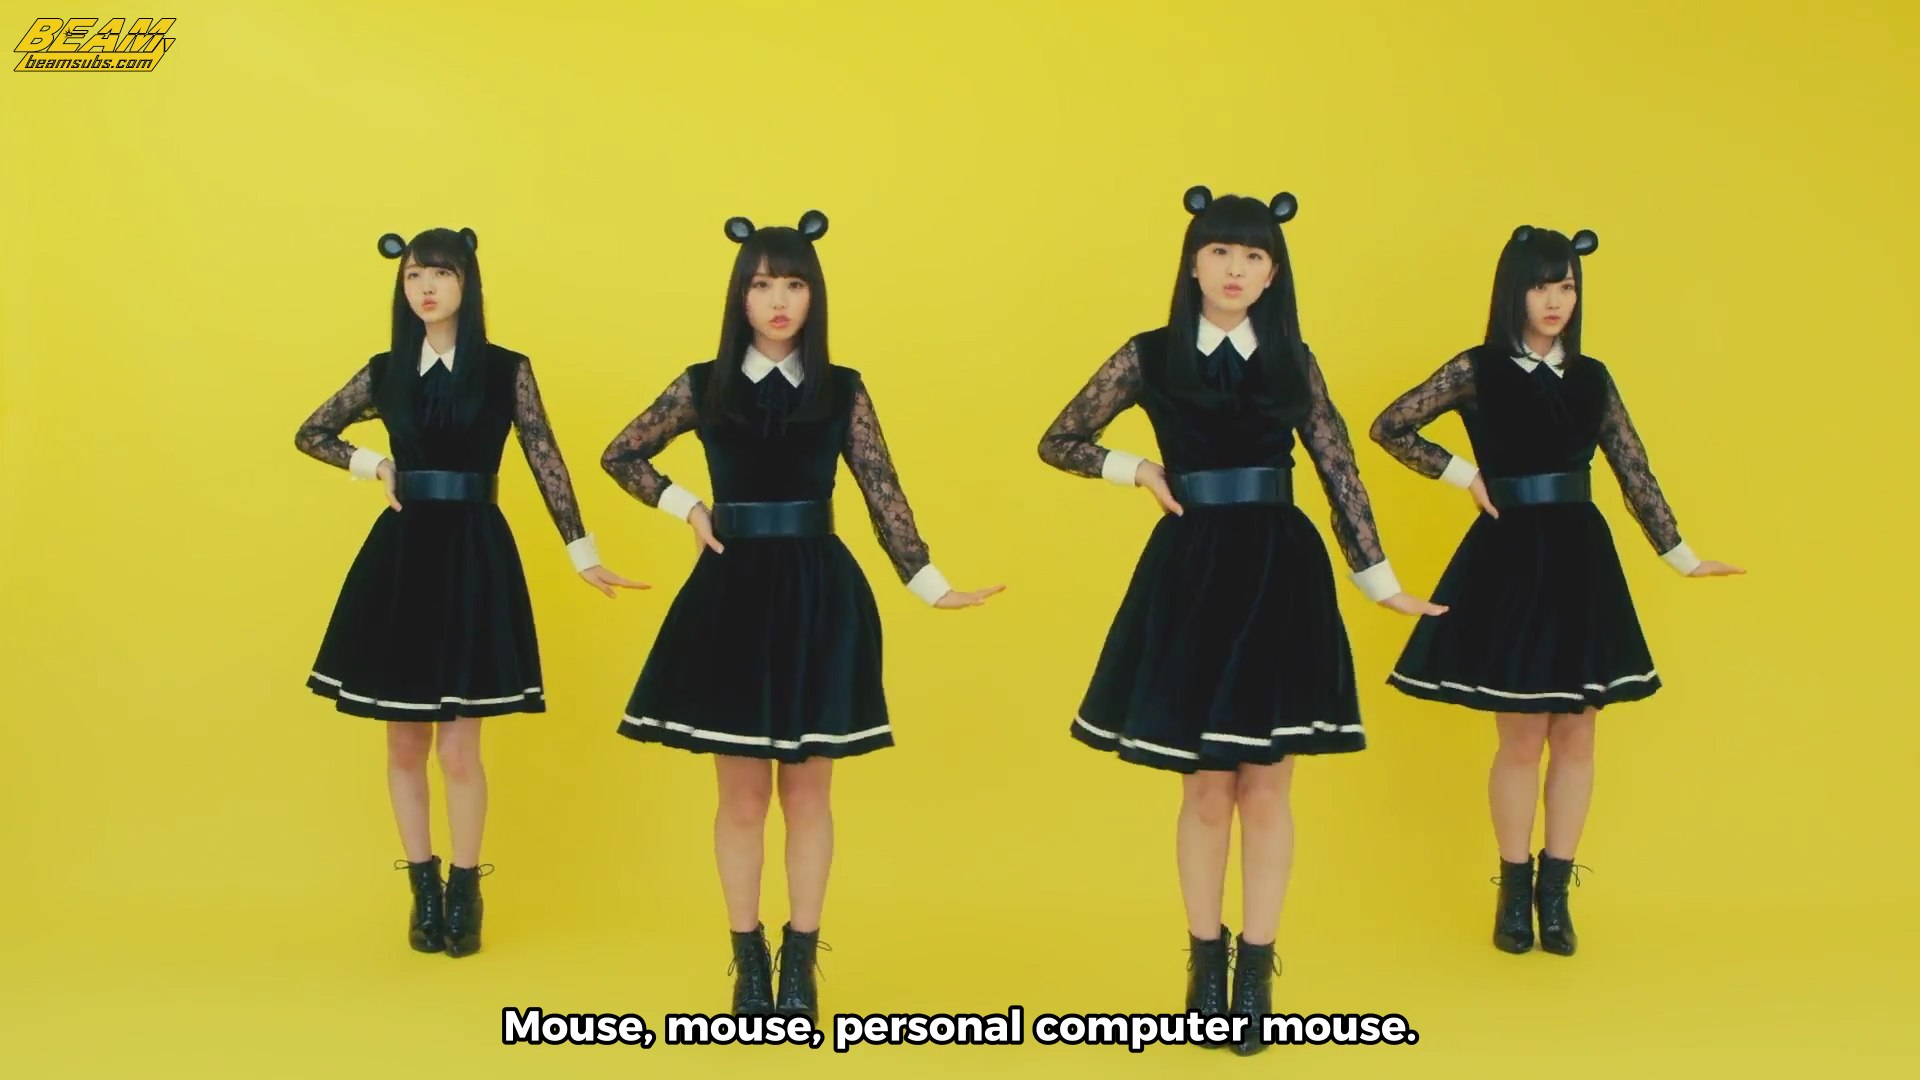 beam nogizaka46 3rd gen mouse cm english subtitles video dailymotion beam nogizaka46 3rd gen mouse cm english subtitles